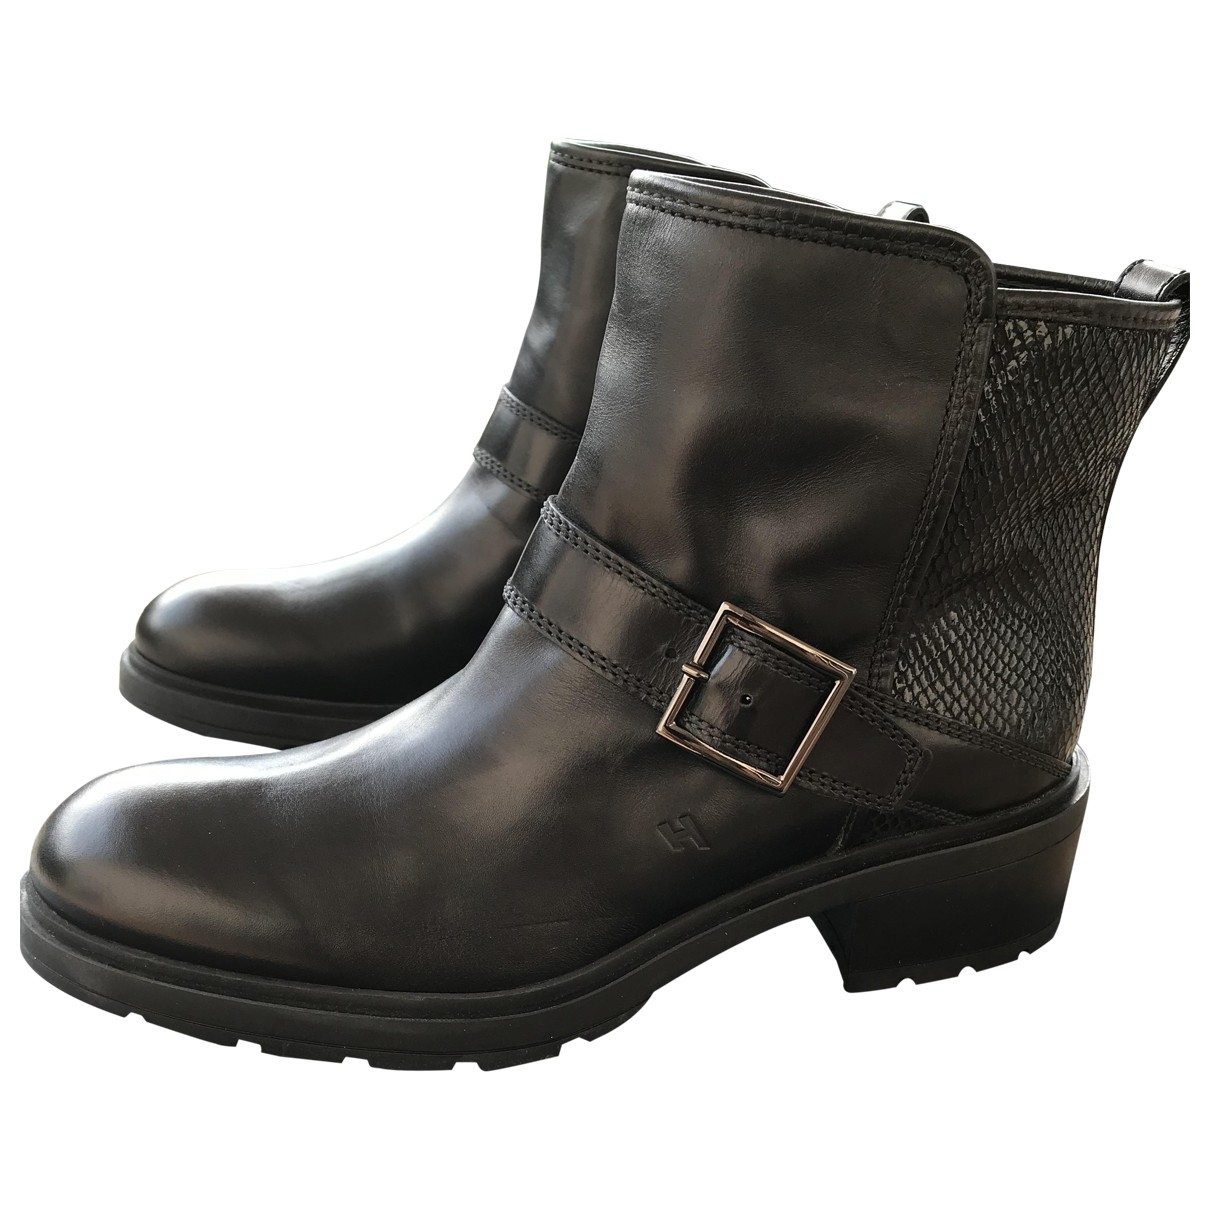 Hogan \N Black Leather Ankle boots for Women 40.5 EU